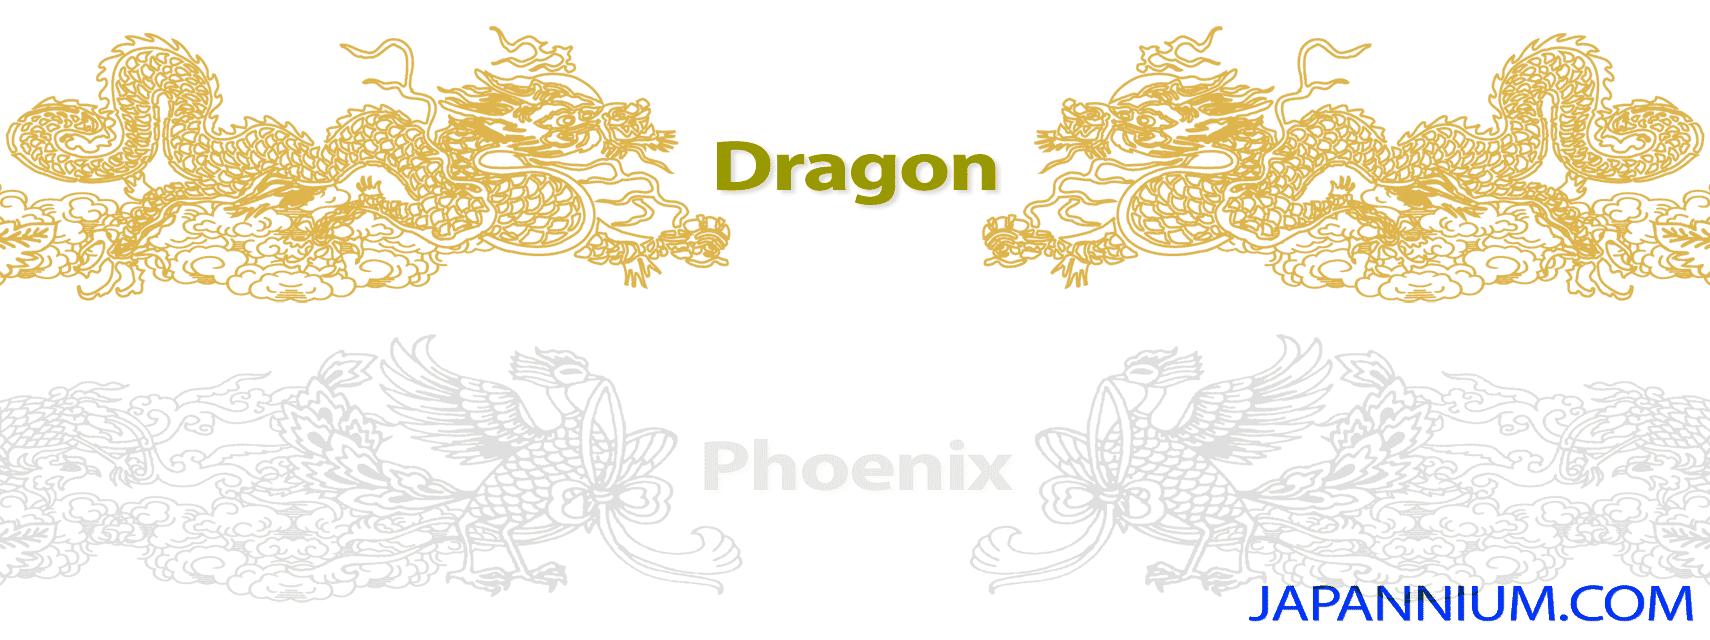 Dragon Border